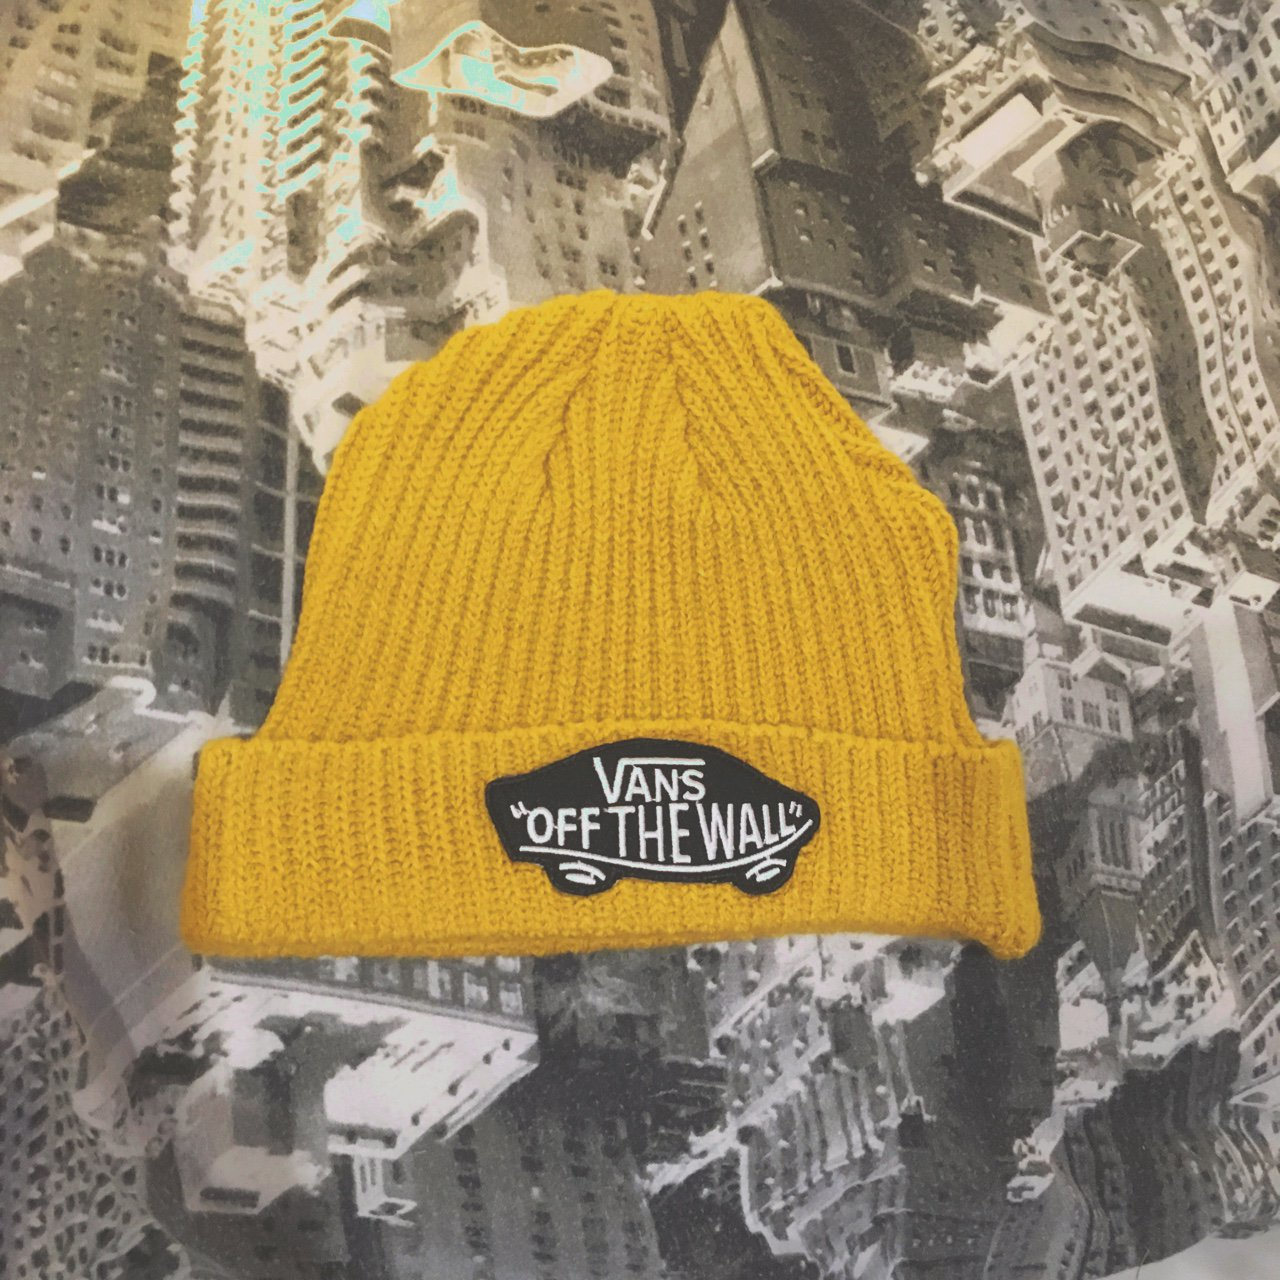 Vans mustard beanie. Vintage Yellow knitted winter hat! Worn - Depop 65a305c031c